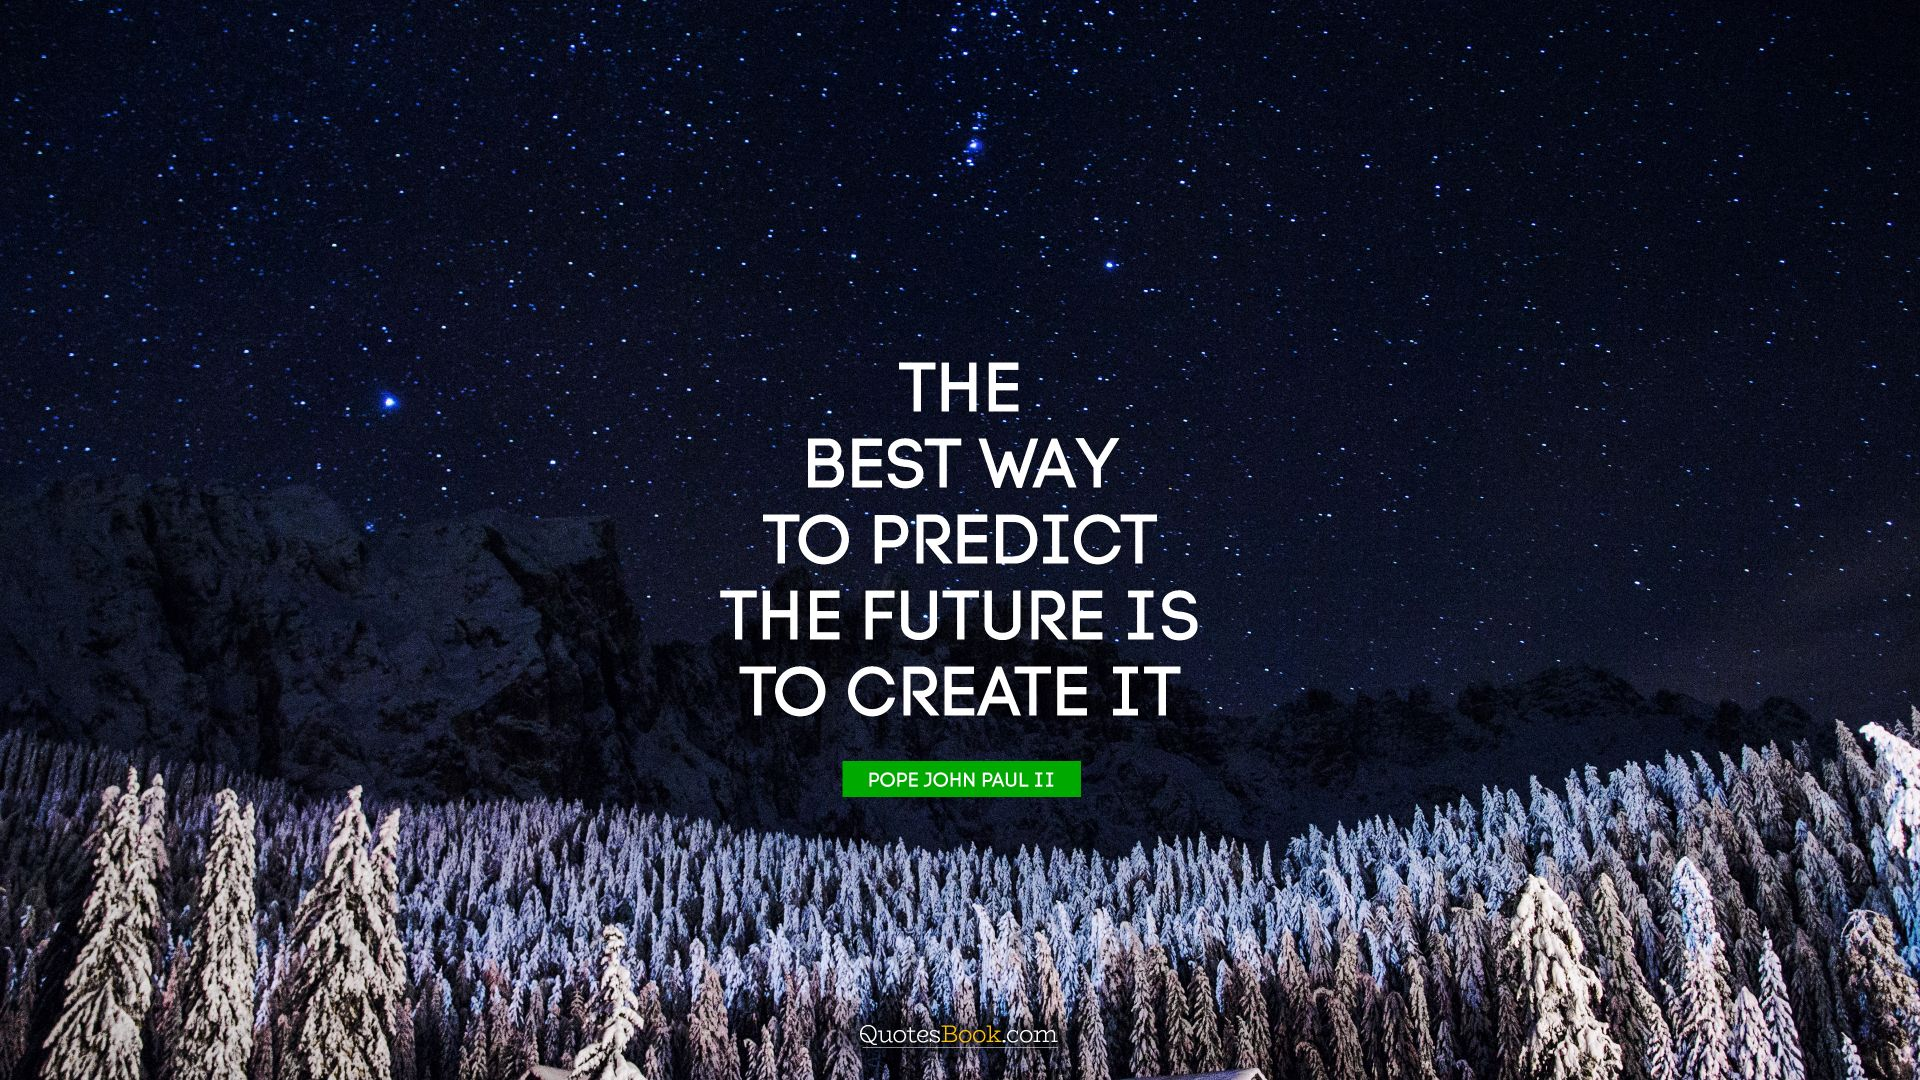 The best way to predict the future is to create it. - Quote by Peter Drucker